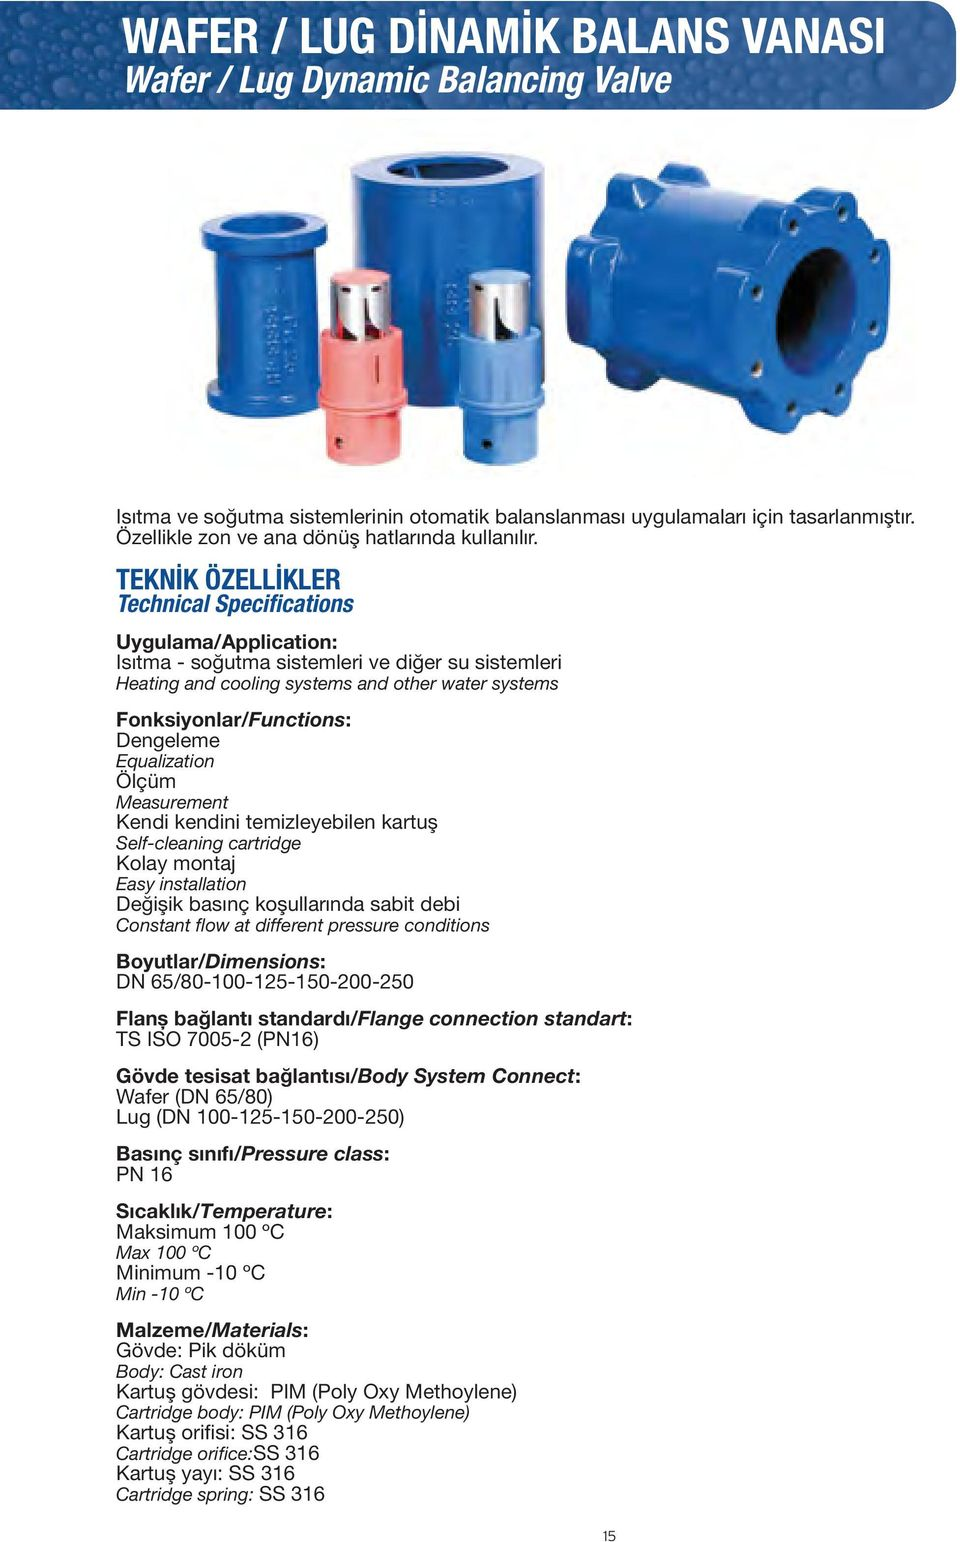 TEKNİK ÖZELLİKLER Technical Specifications Uygulama/Application: Isıtma - soğutma sistemleri ve diğer su sistemleri Heating and cooling systems and other water systems Fonksiyonlar/Functions: